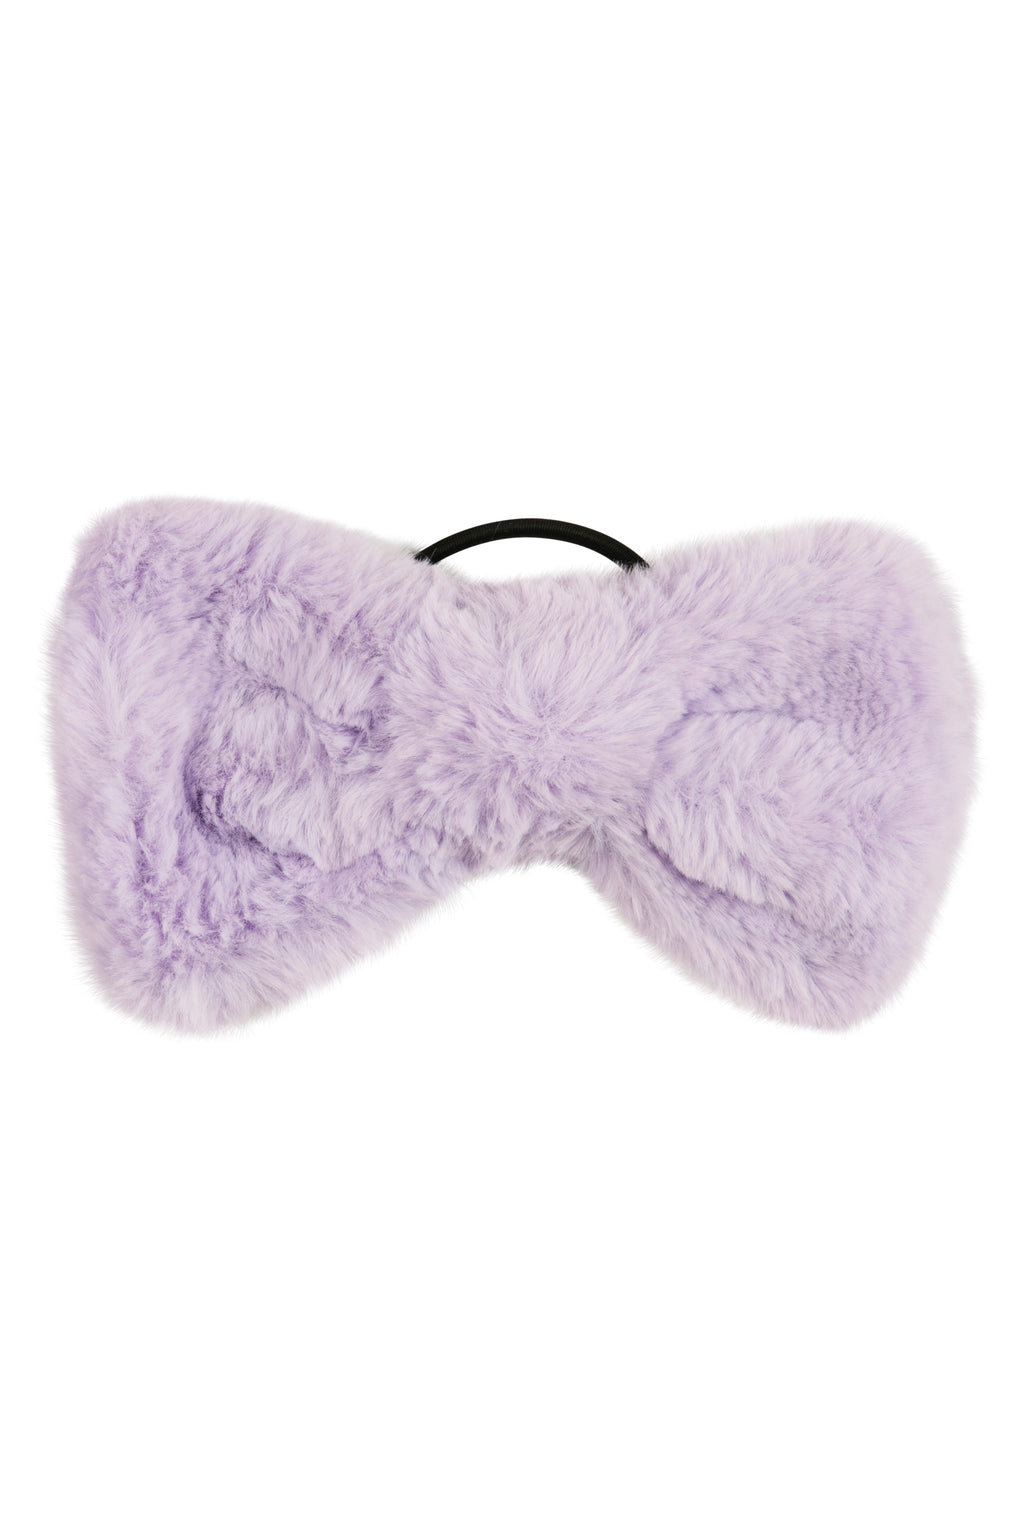 Wauwcapow by Bangbang Copenhagen - Bow Fantastic Purple - Bow Tie